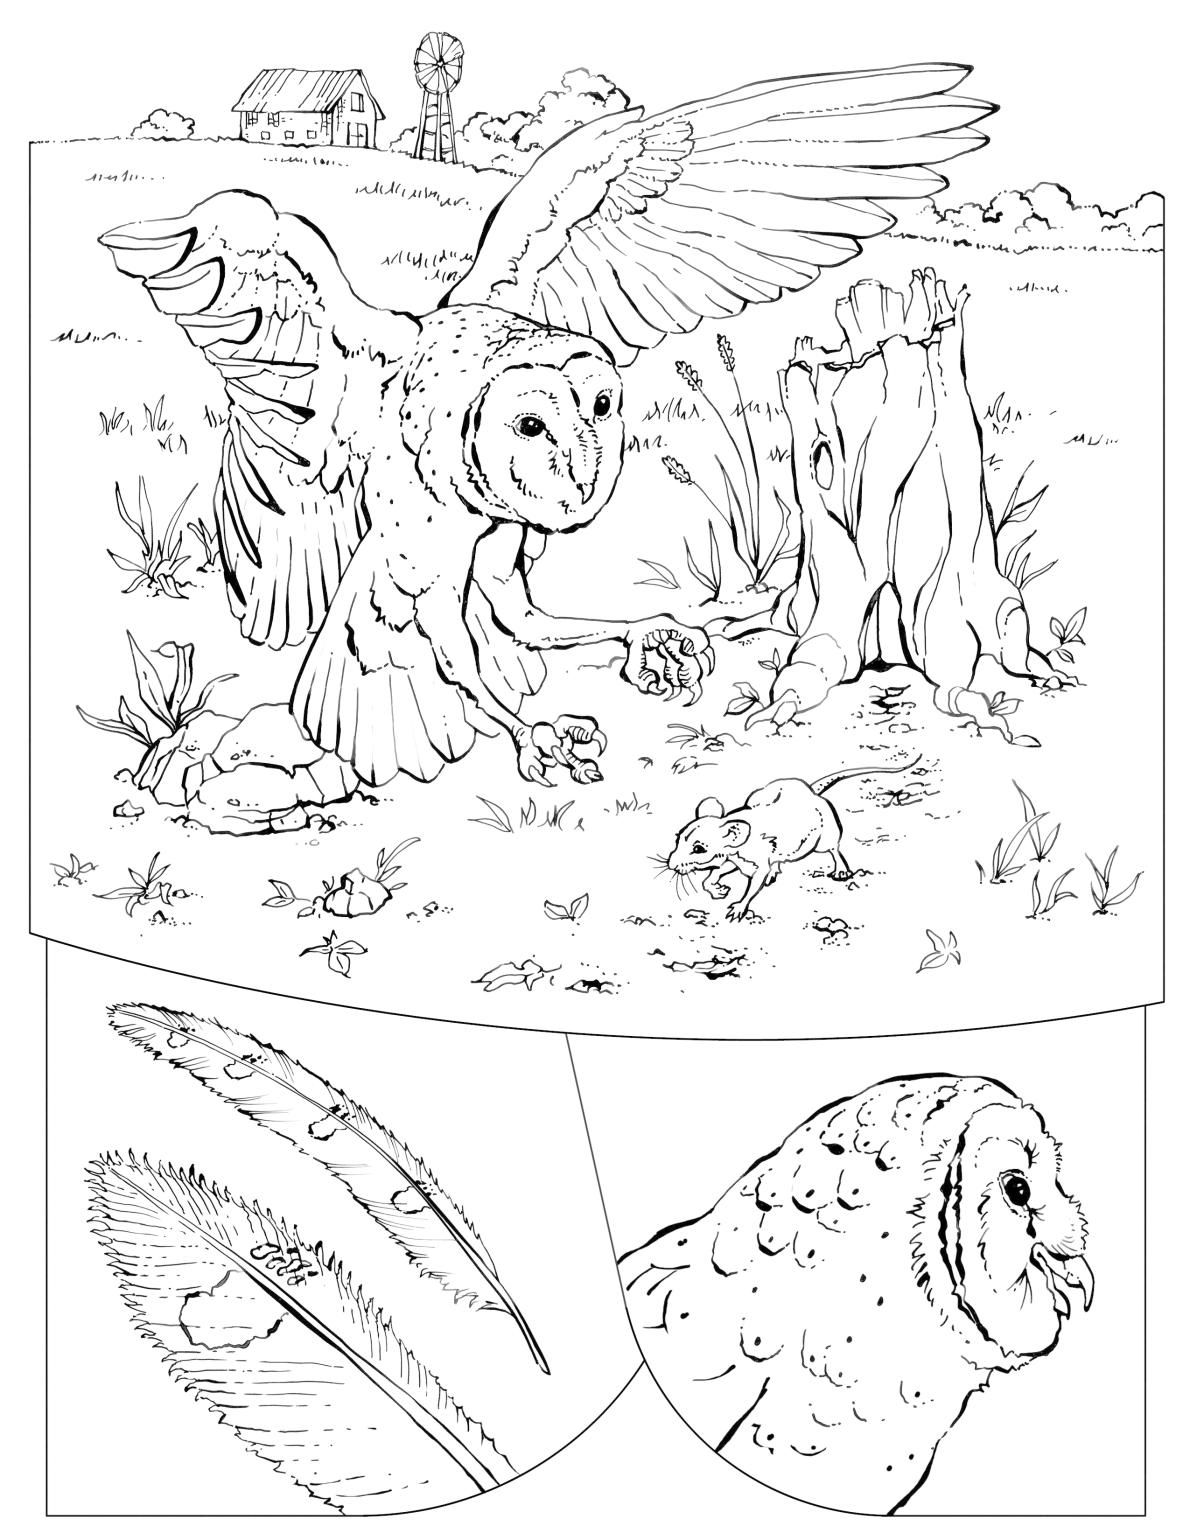 Coloring Book Animals A To I Coloring Books Coloring Pages To Print Coloring Pages